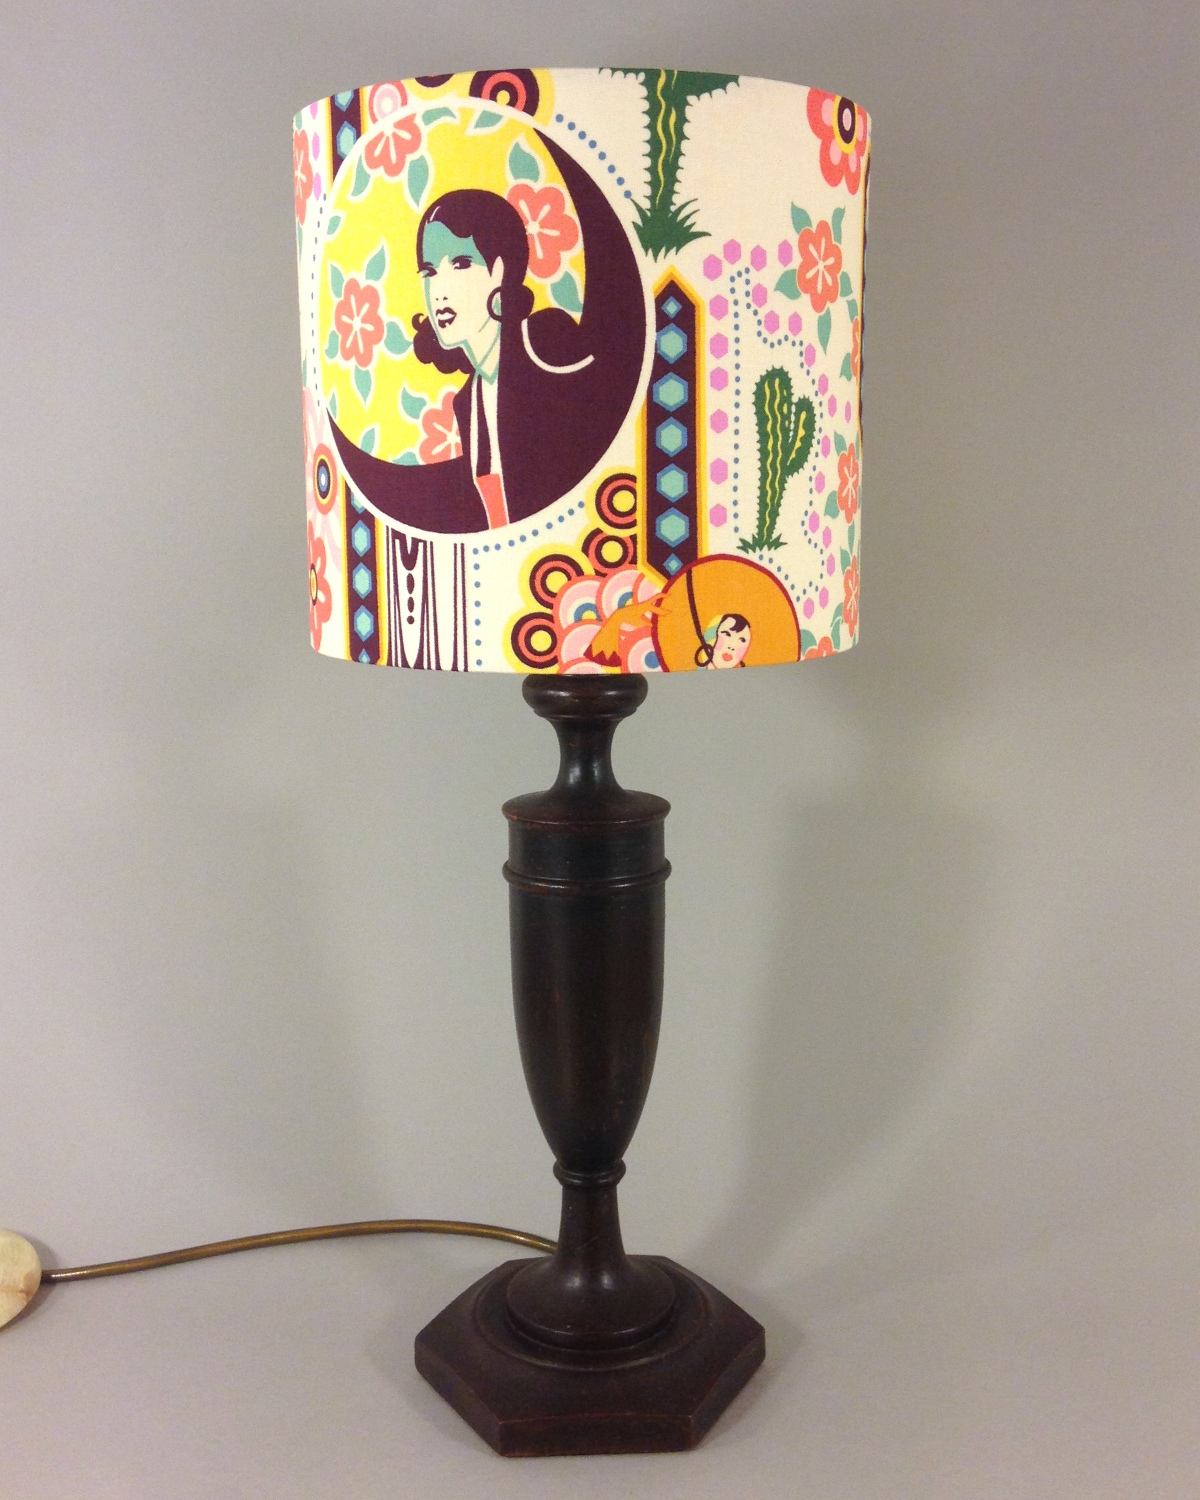 Deco Desert vintage lamp with handmade lampshade